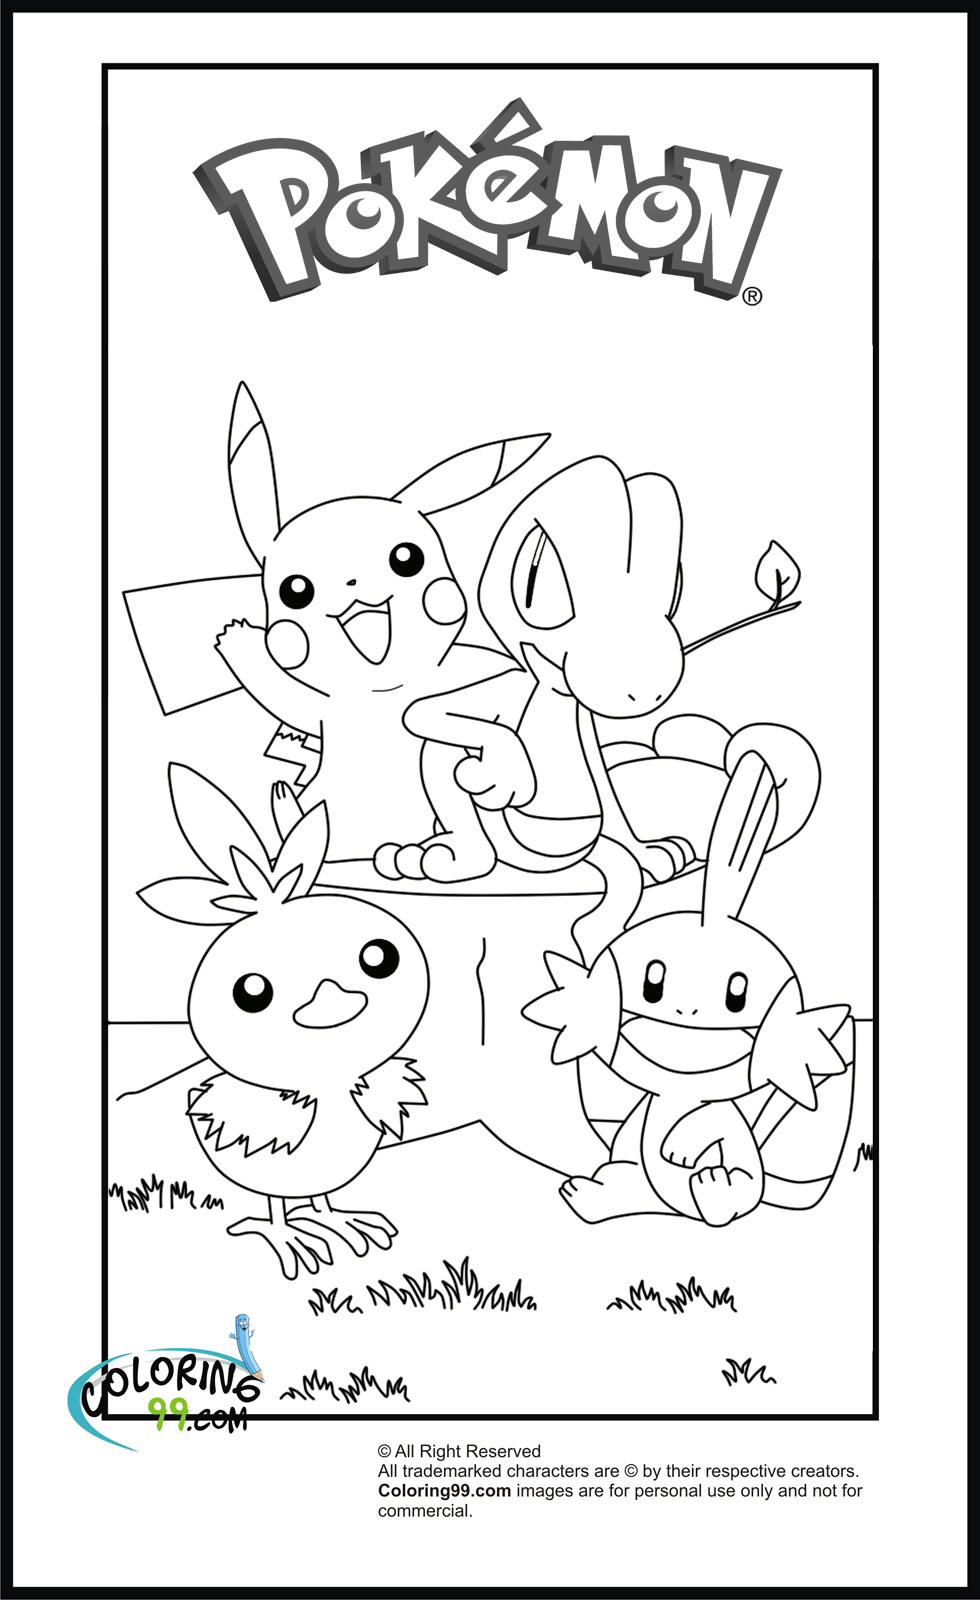 Pikachu Coloring Pages | Team colors